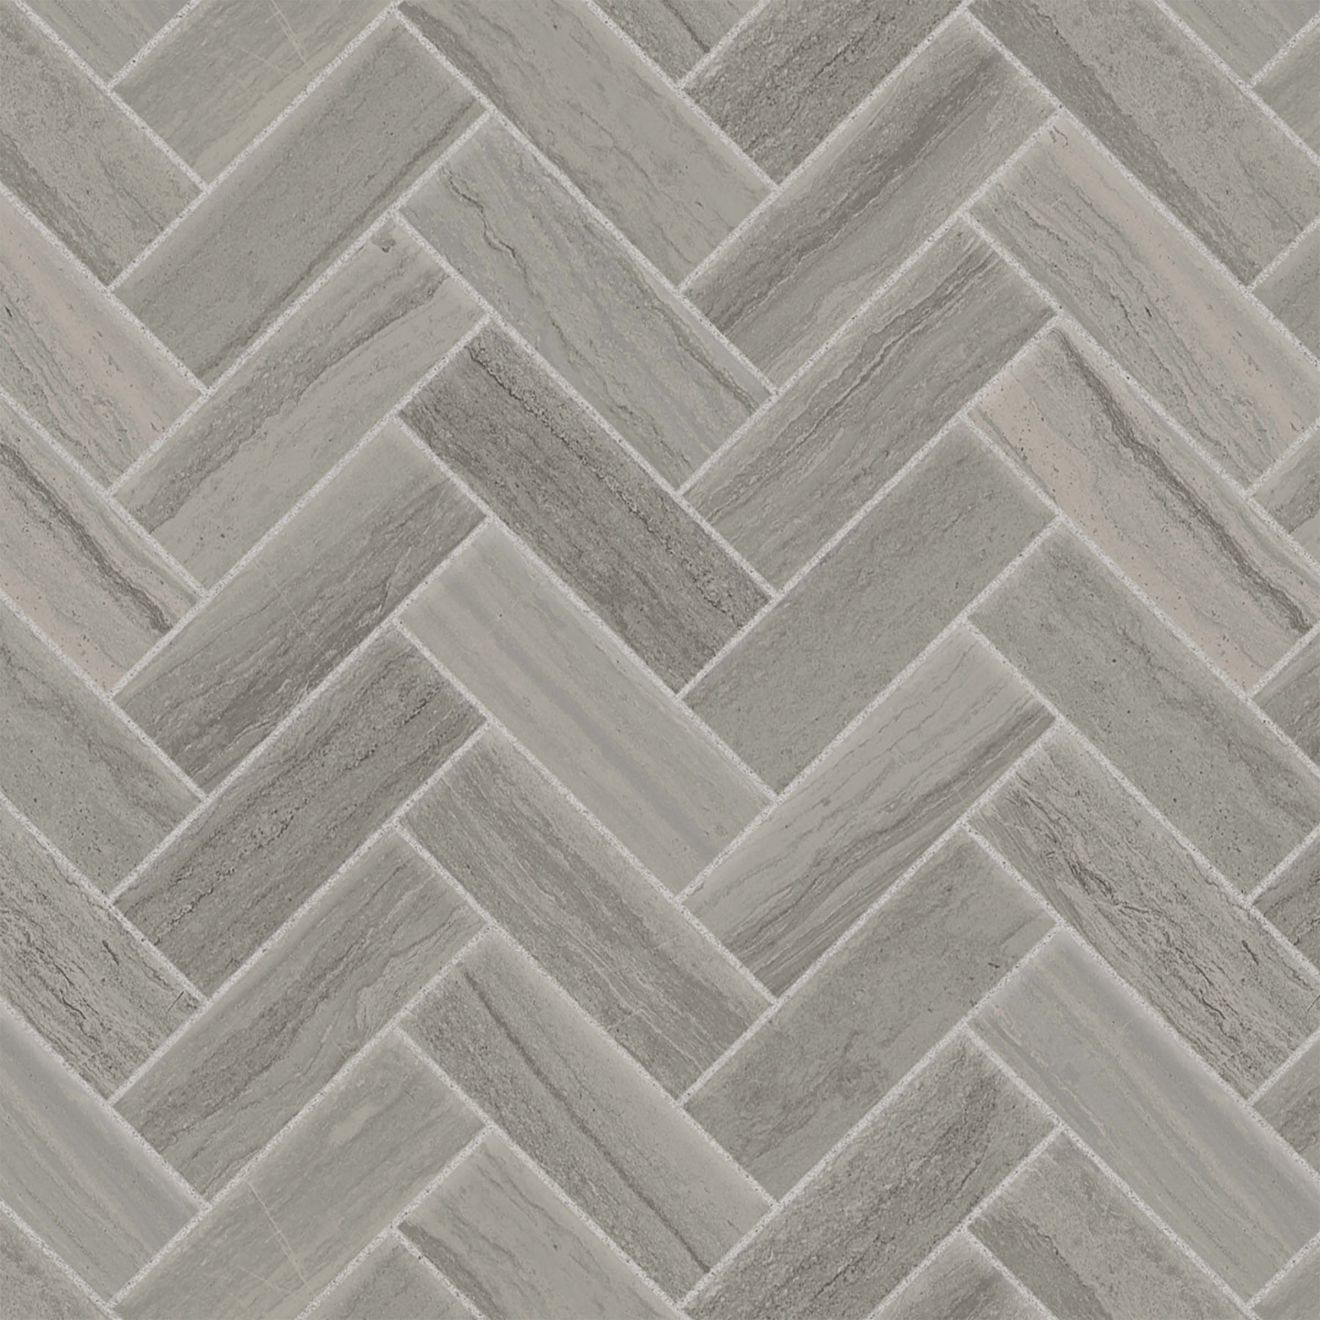 "Highland 1"" x 4"" Floor & Wall Mosaic in Greige"